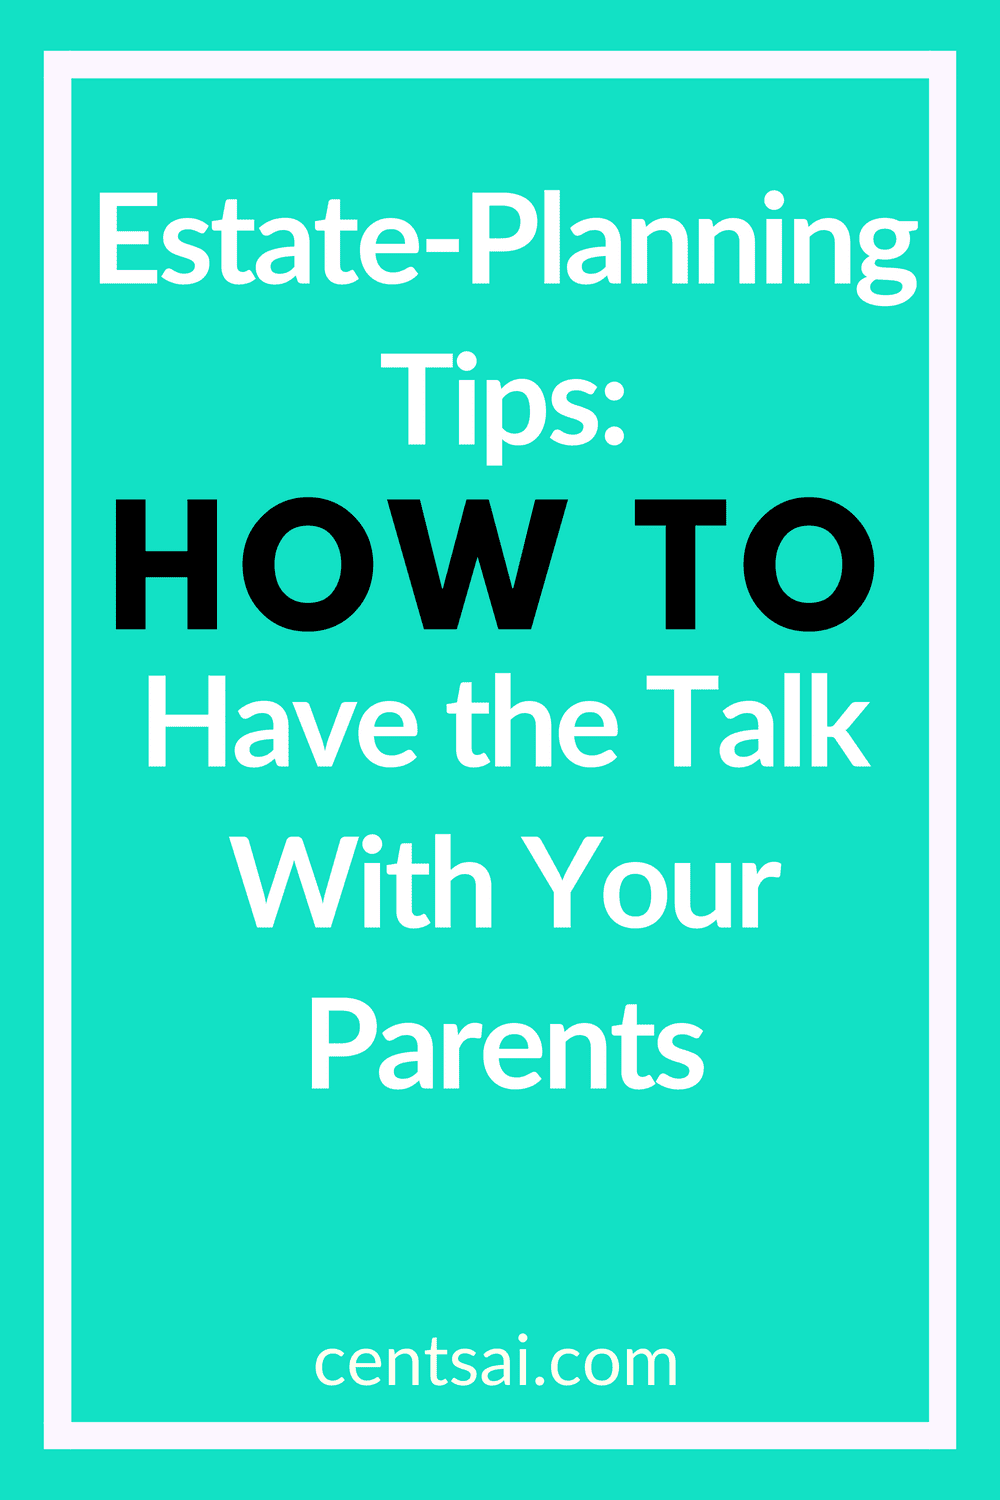 Estate-Planning Tips: How to Have the Talk With Your Parents. Are you ready to deal with your parents' wills or debt after they die? It may sound morbid, but it's crucial to plan. Check out these estate-planning checklist and tips. #estateplanningchecklist #estateplanning #estateplanningtips